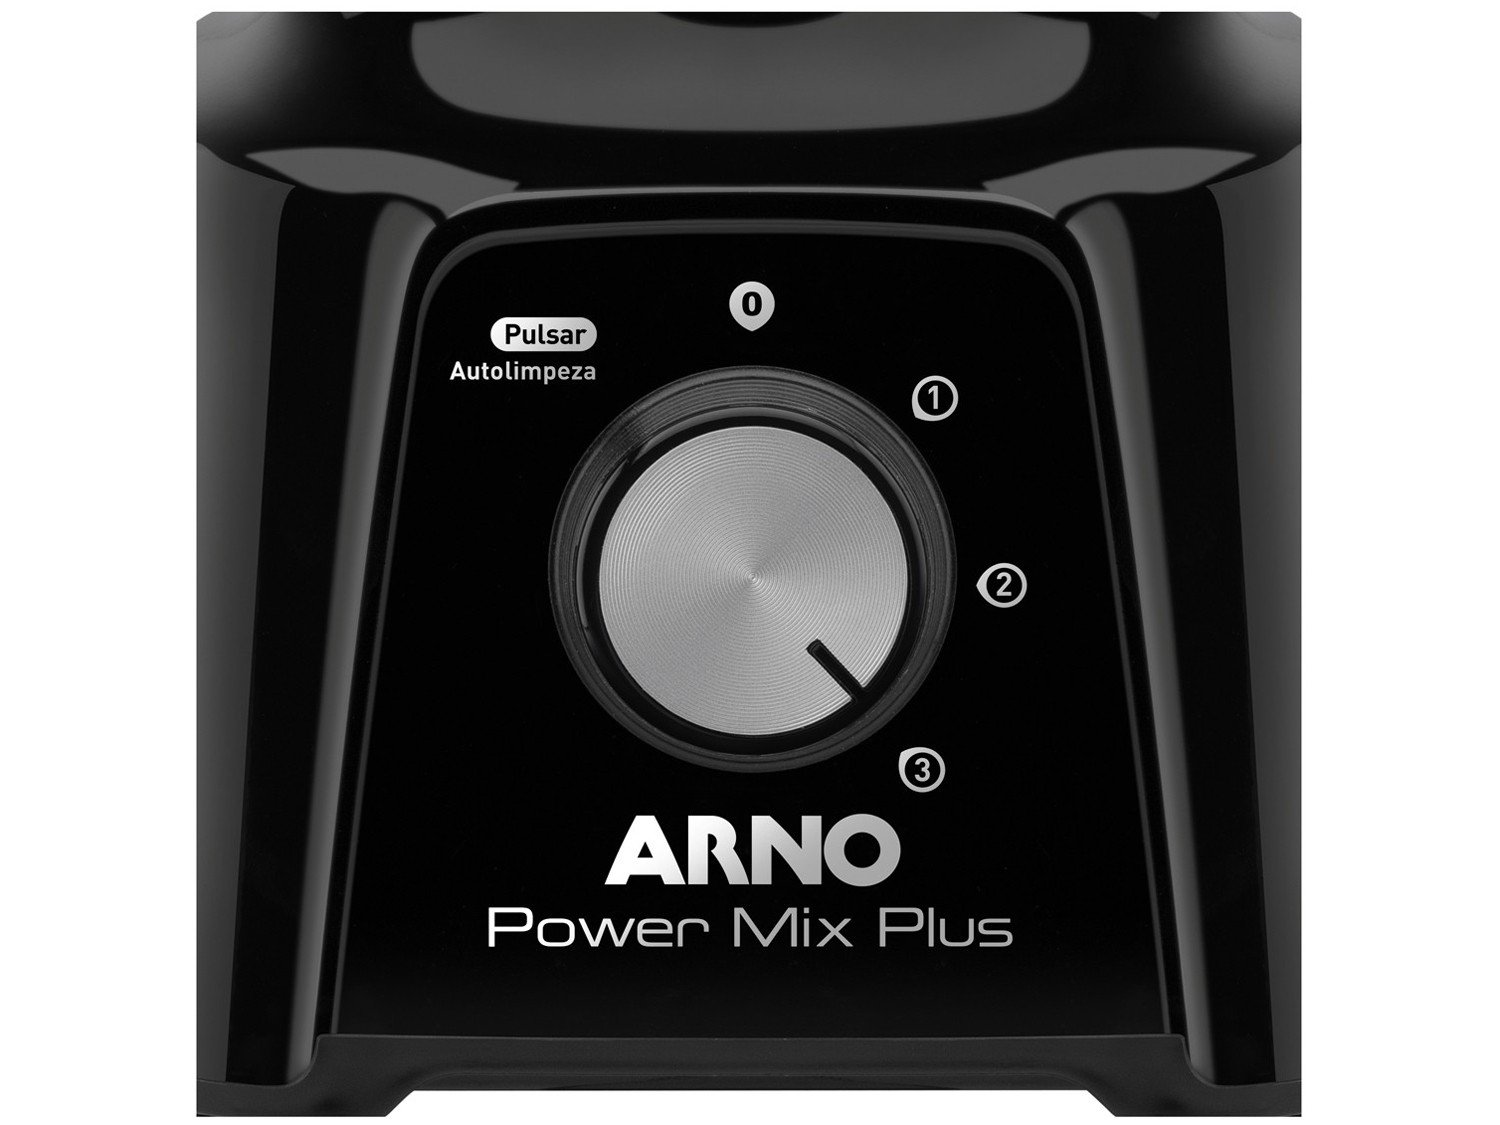 Liquidificador Arno Power Mix Plus LQ20 com 3 Velocidades 550W – Preto - 110V - 16